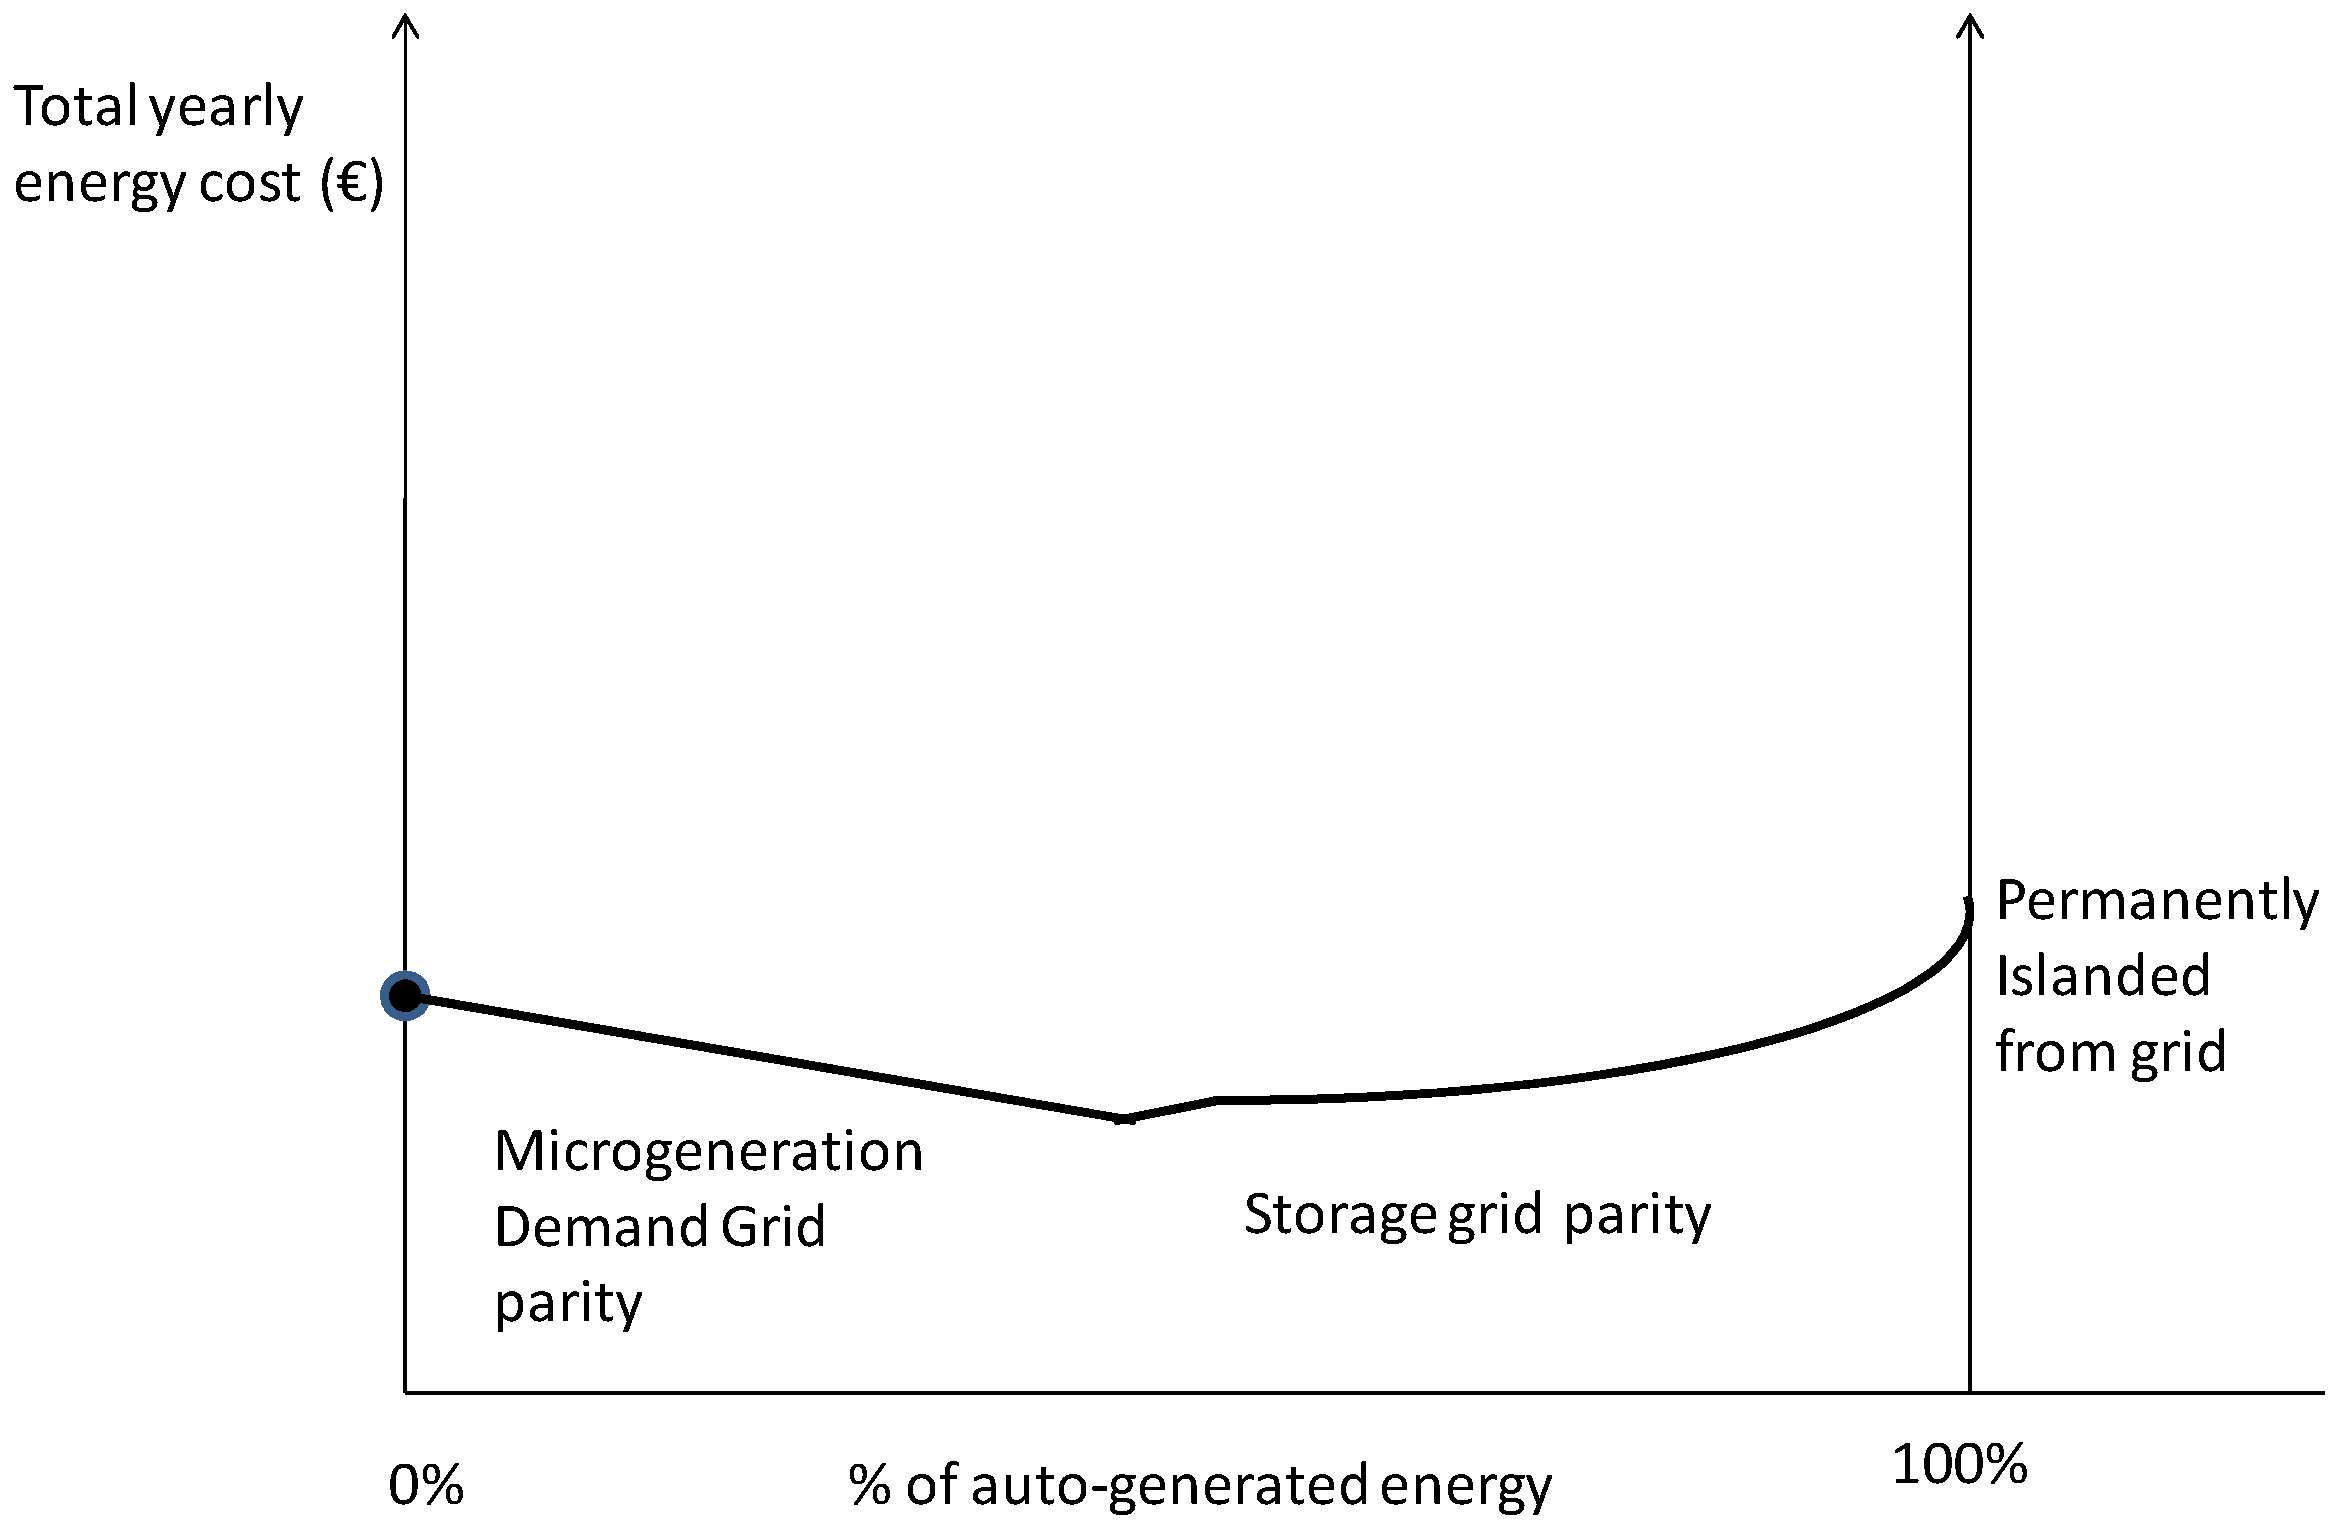 Energies Free Full Text A Methodology For Assessing Islanding Of Off Grid Systems Diagram No